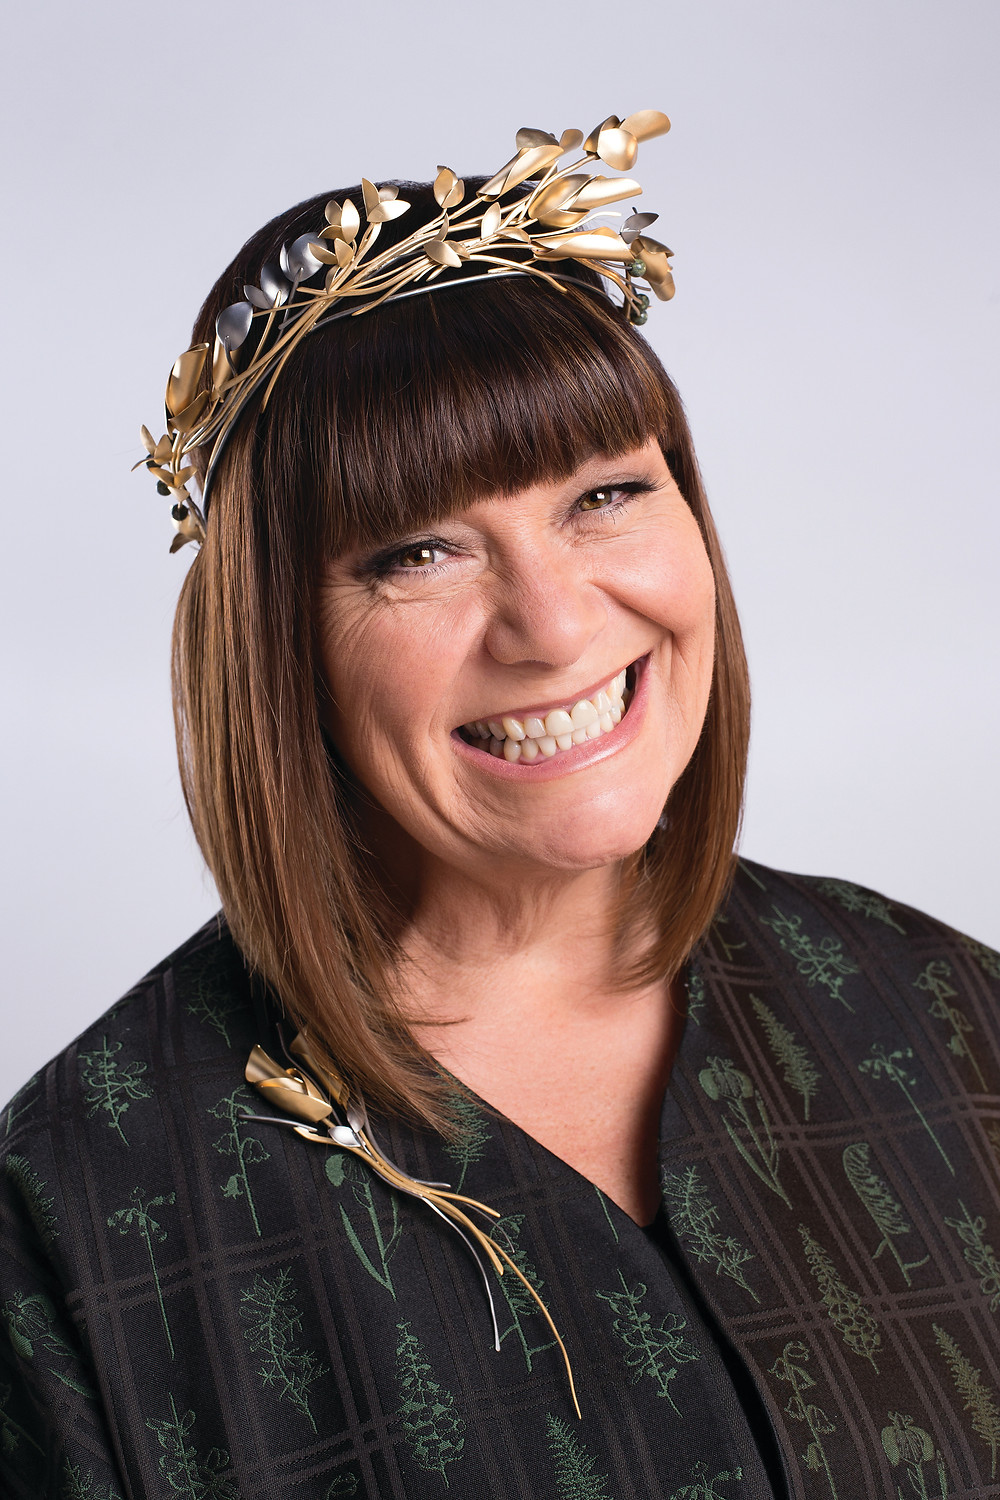 : Actress, author, BAFTA Fellowship recipient and national treasure, Dawn French